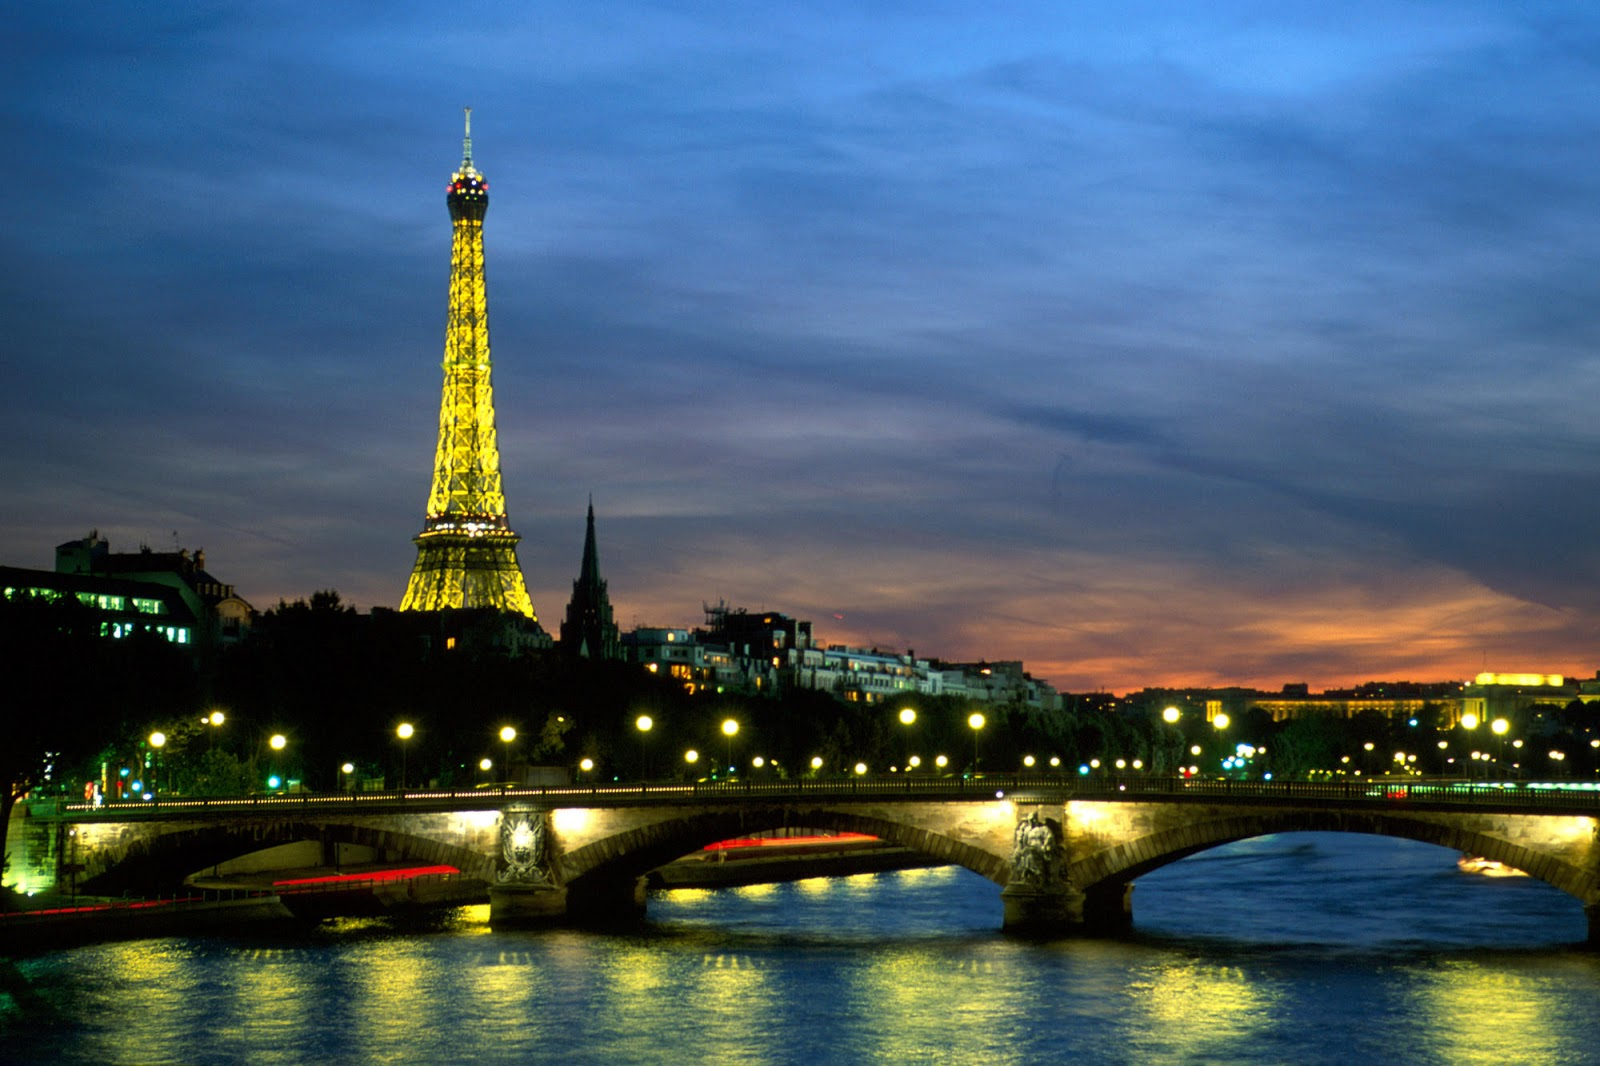 Android Phones Wallpapers: Android Wallpaper Paris At